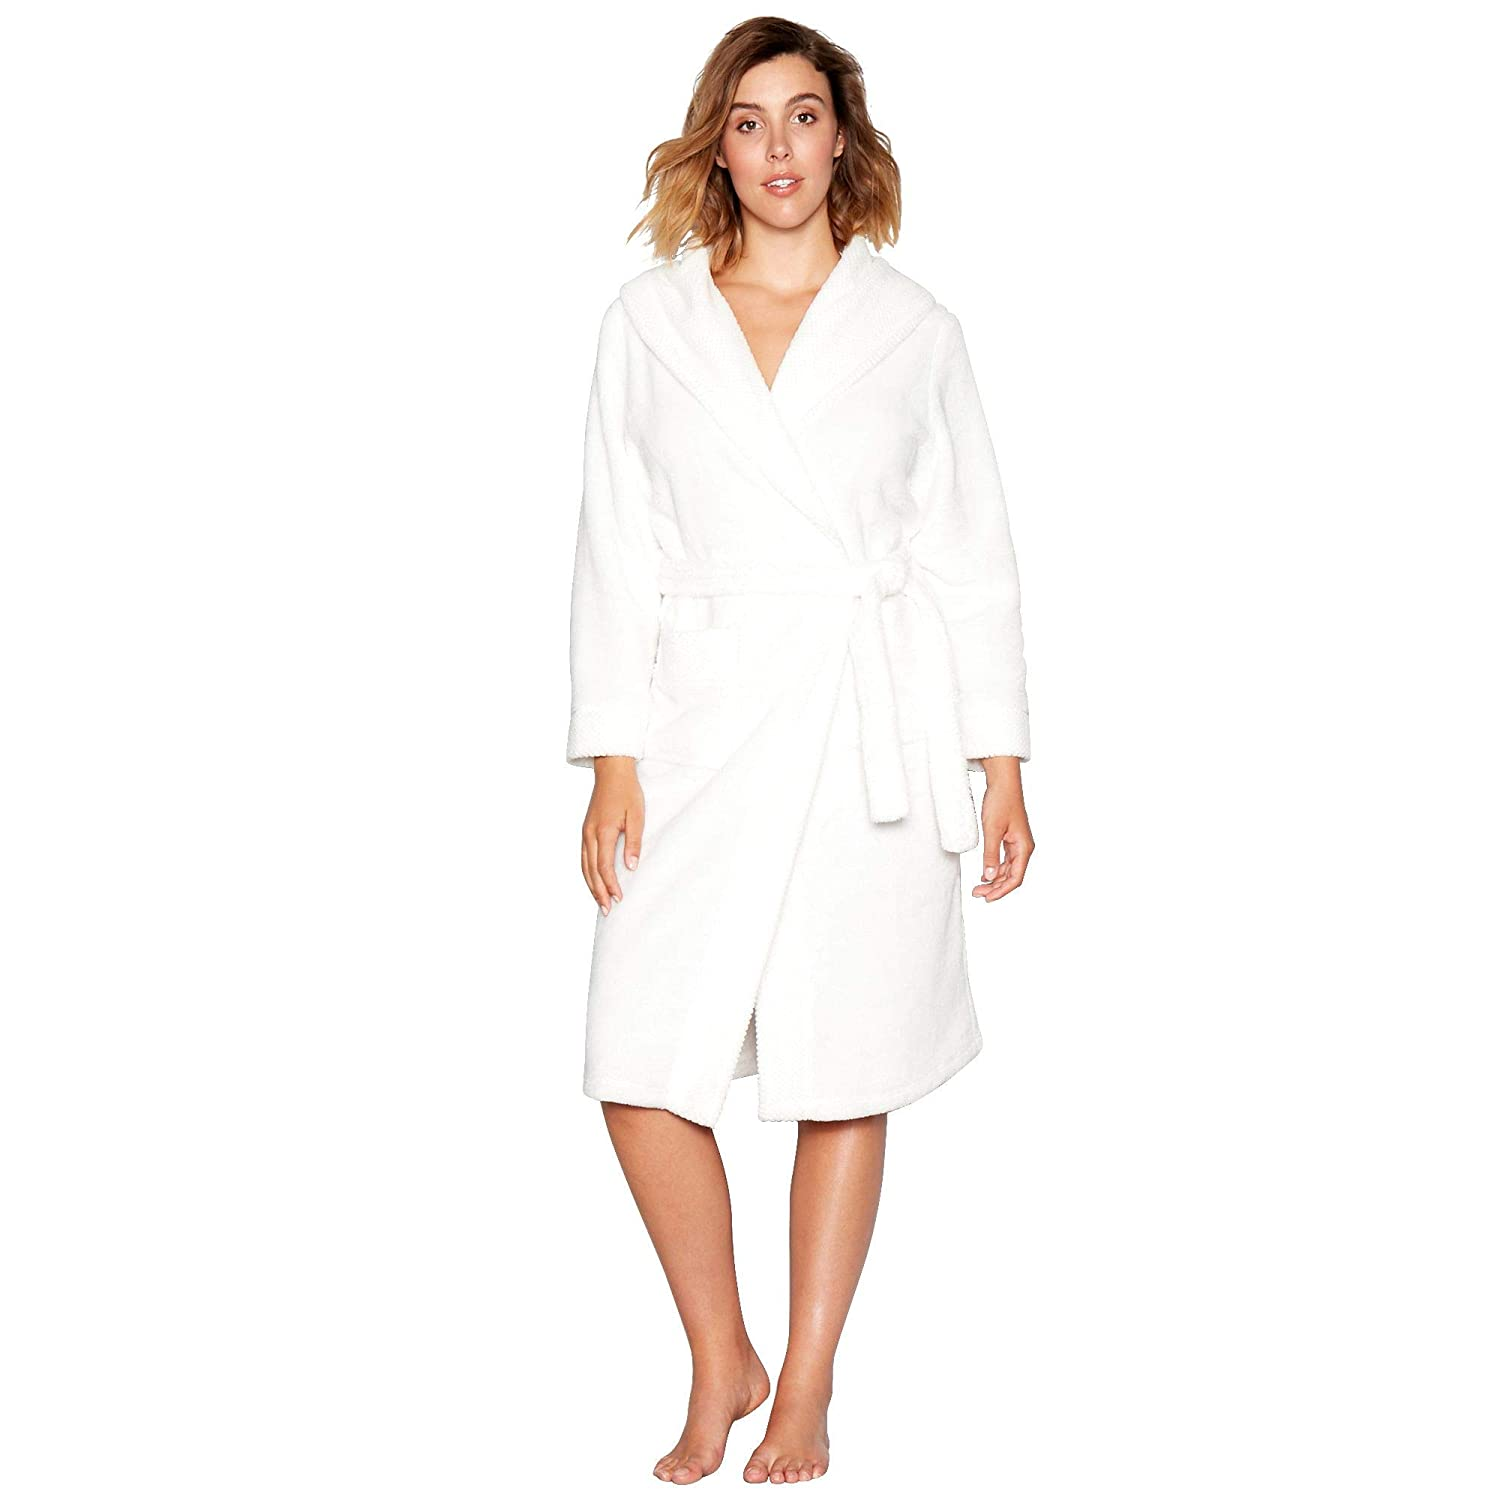 J by Jasper Conran Womens White Waffle Trim Dressing Gown  J by Jasper  Conran  Amazon.co.uk  Clothing 05a8937d9